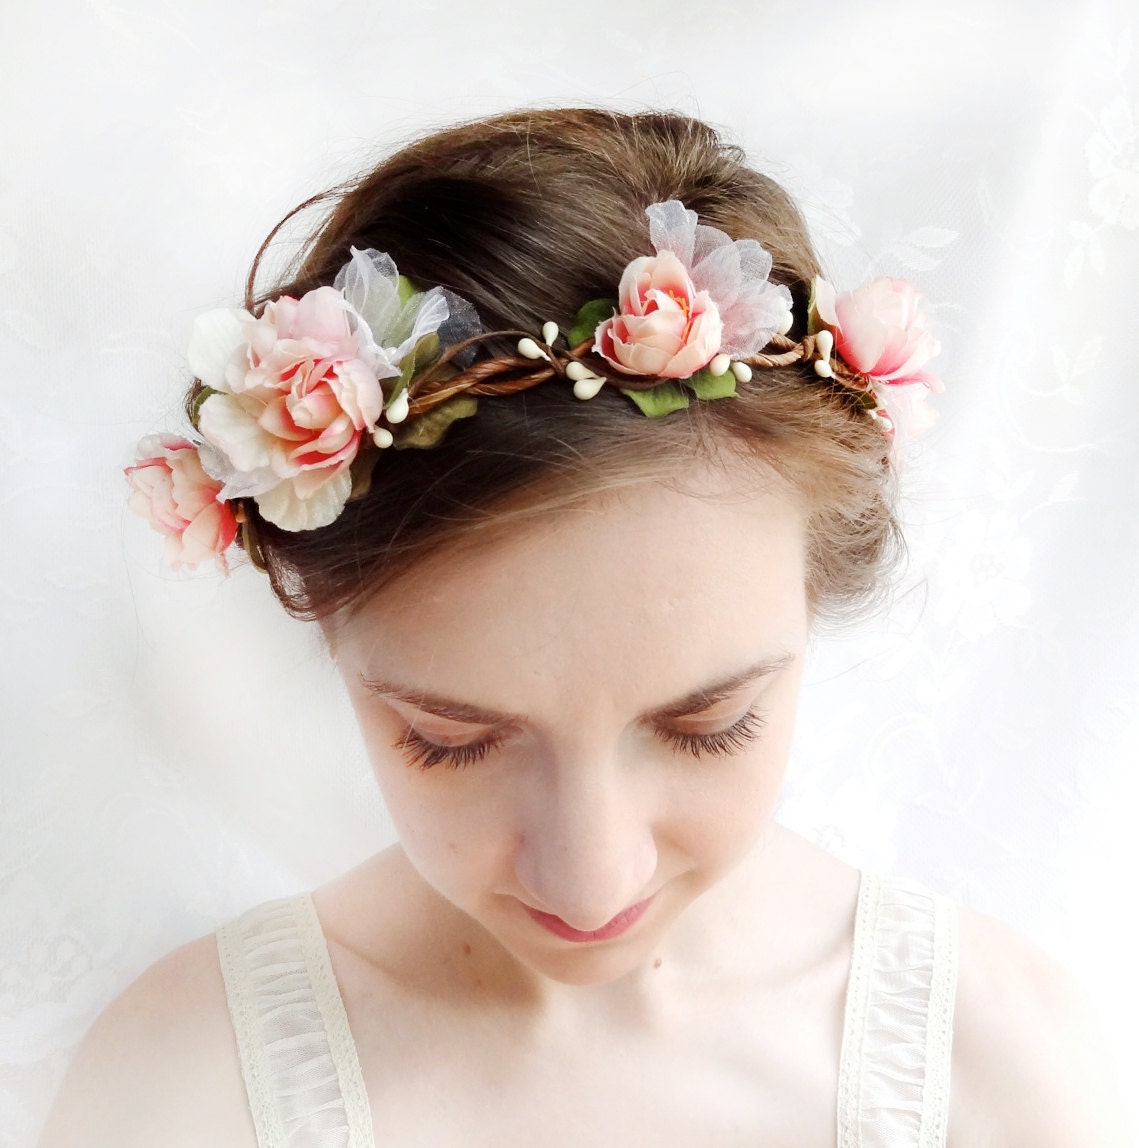 Flower Wedding Headpieces: Pink Flower Bridal Wreath Bridal Headpiece Blush Pink Hair